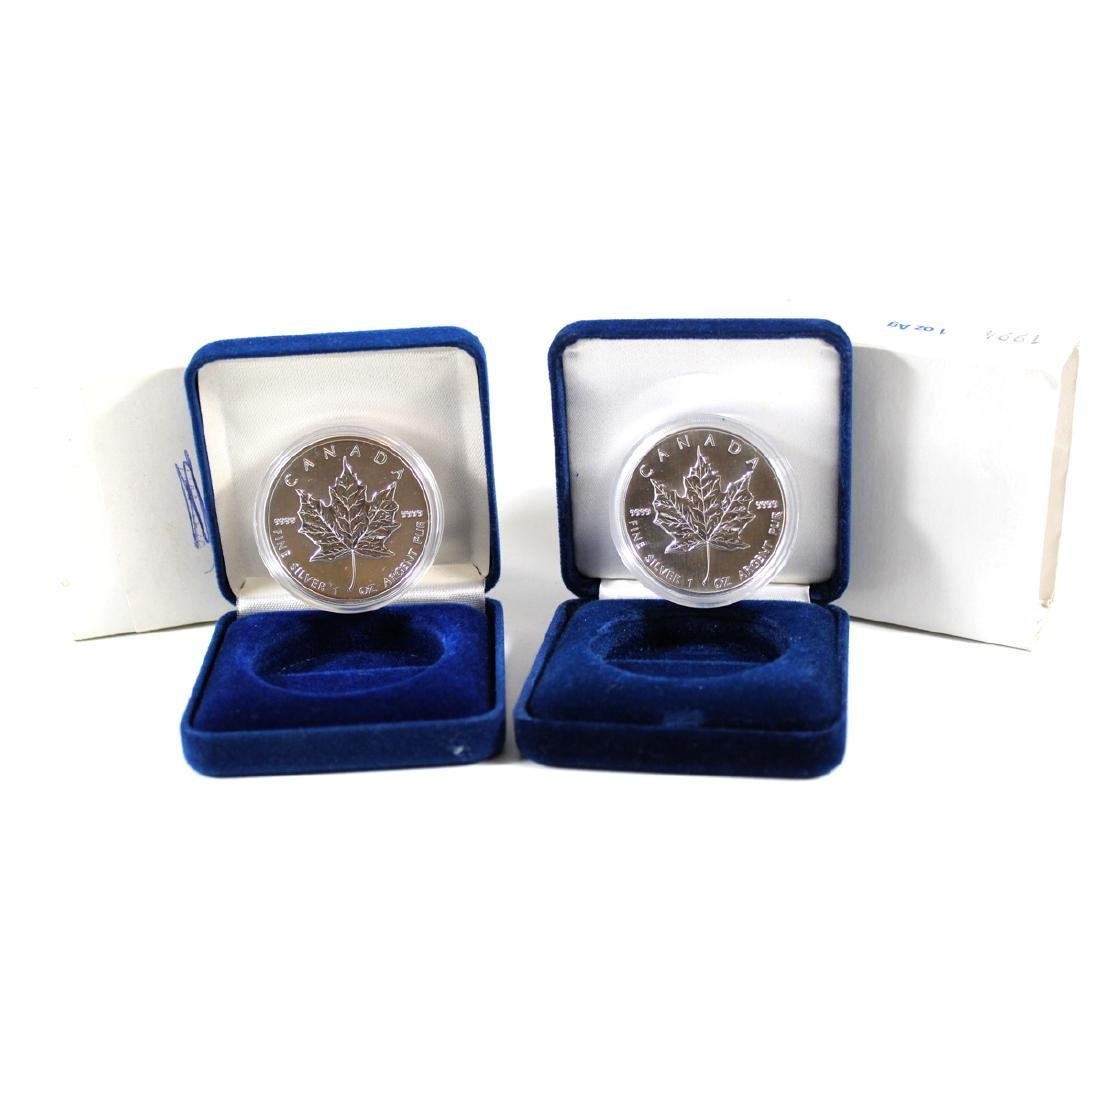 1994 & 1999 Canada 1ox Silver Maple Leafs with Display